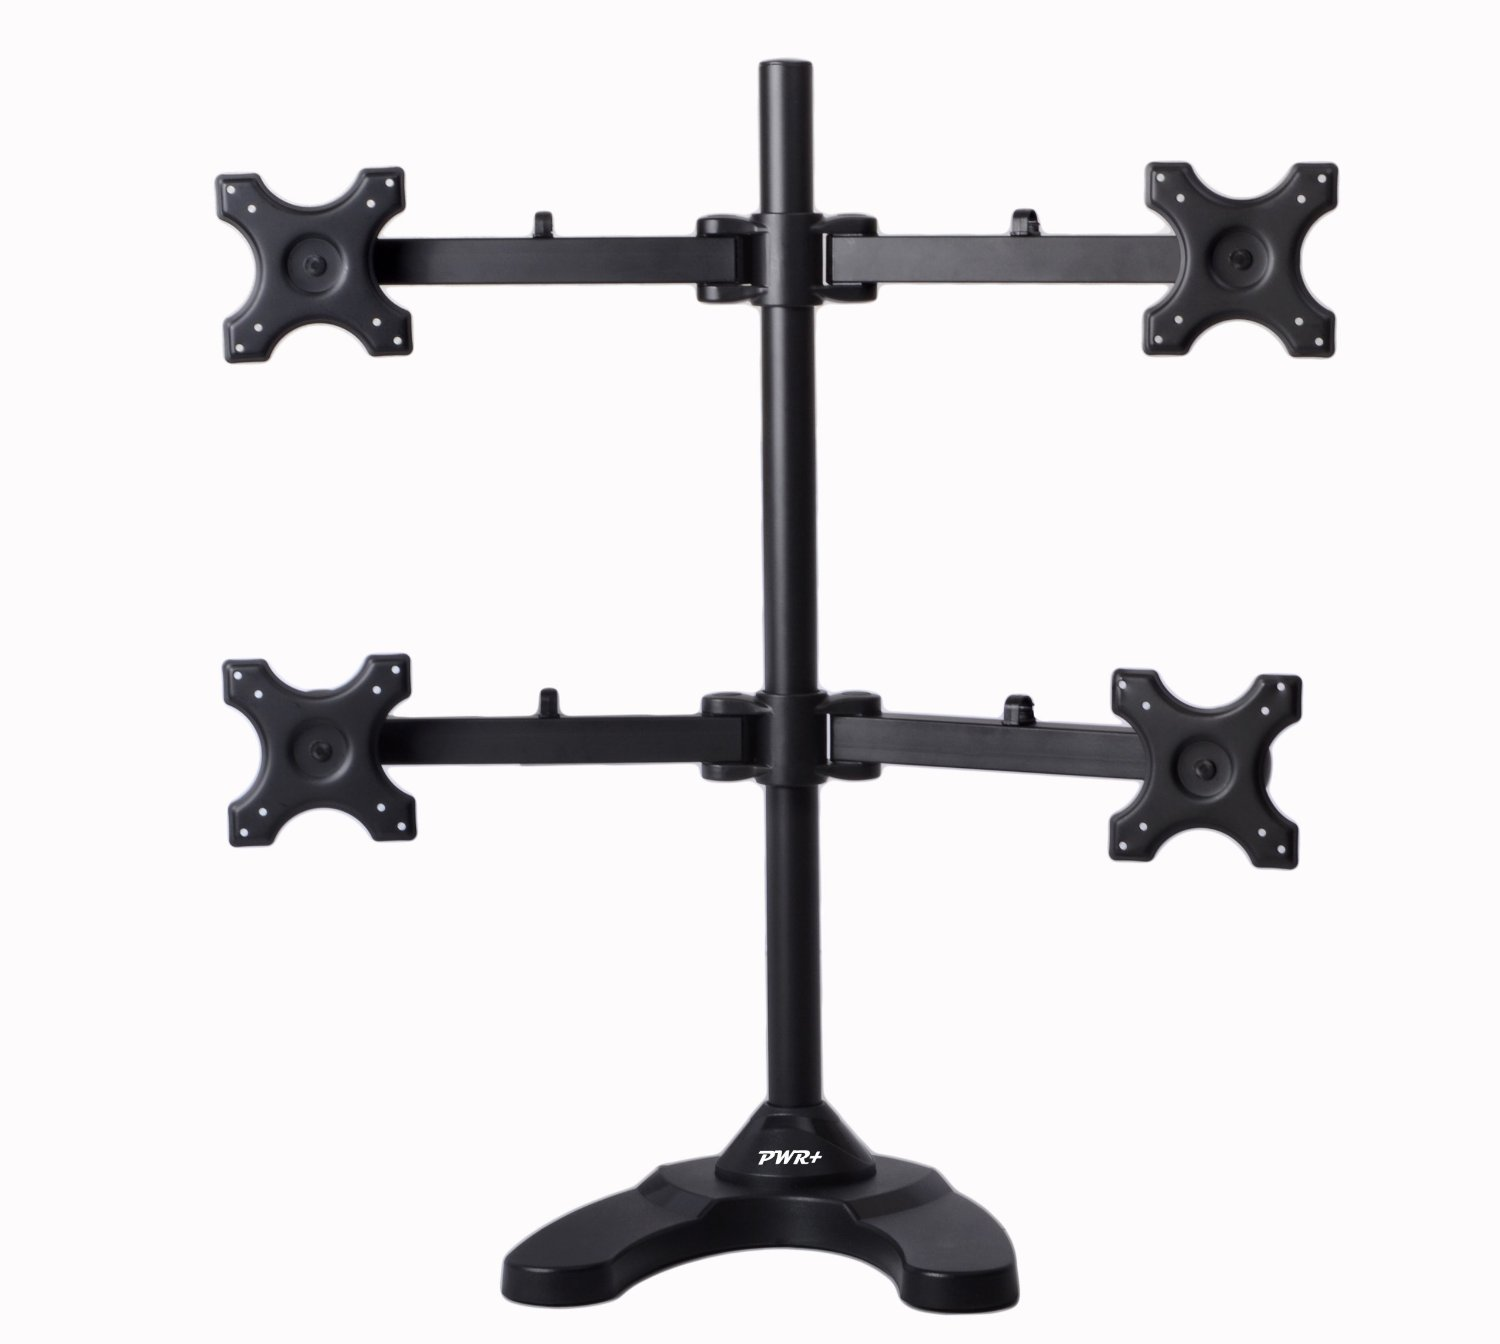 Pwr+ Quad Monitor Stand